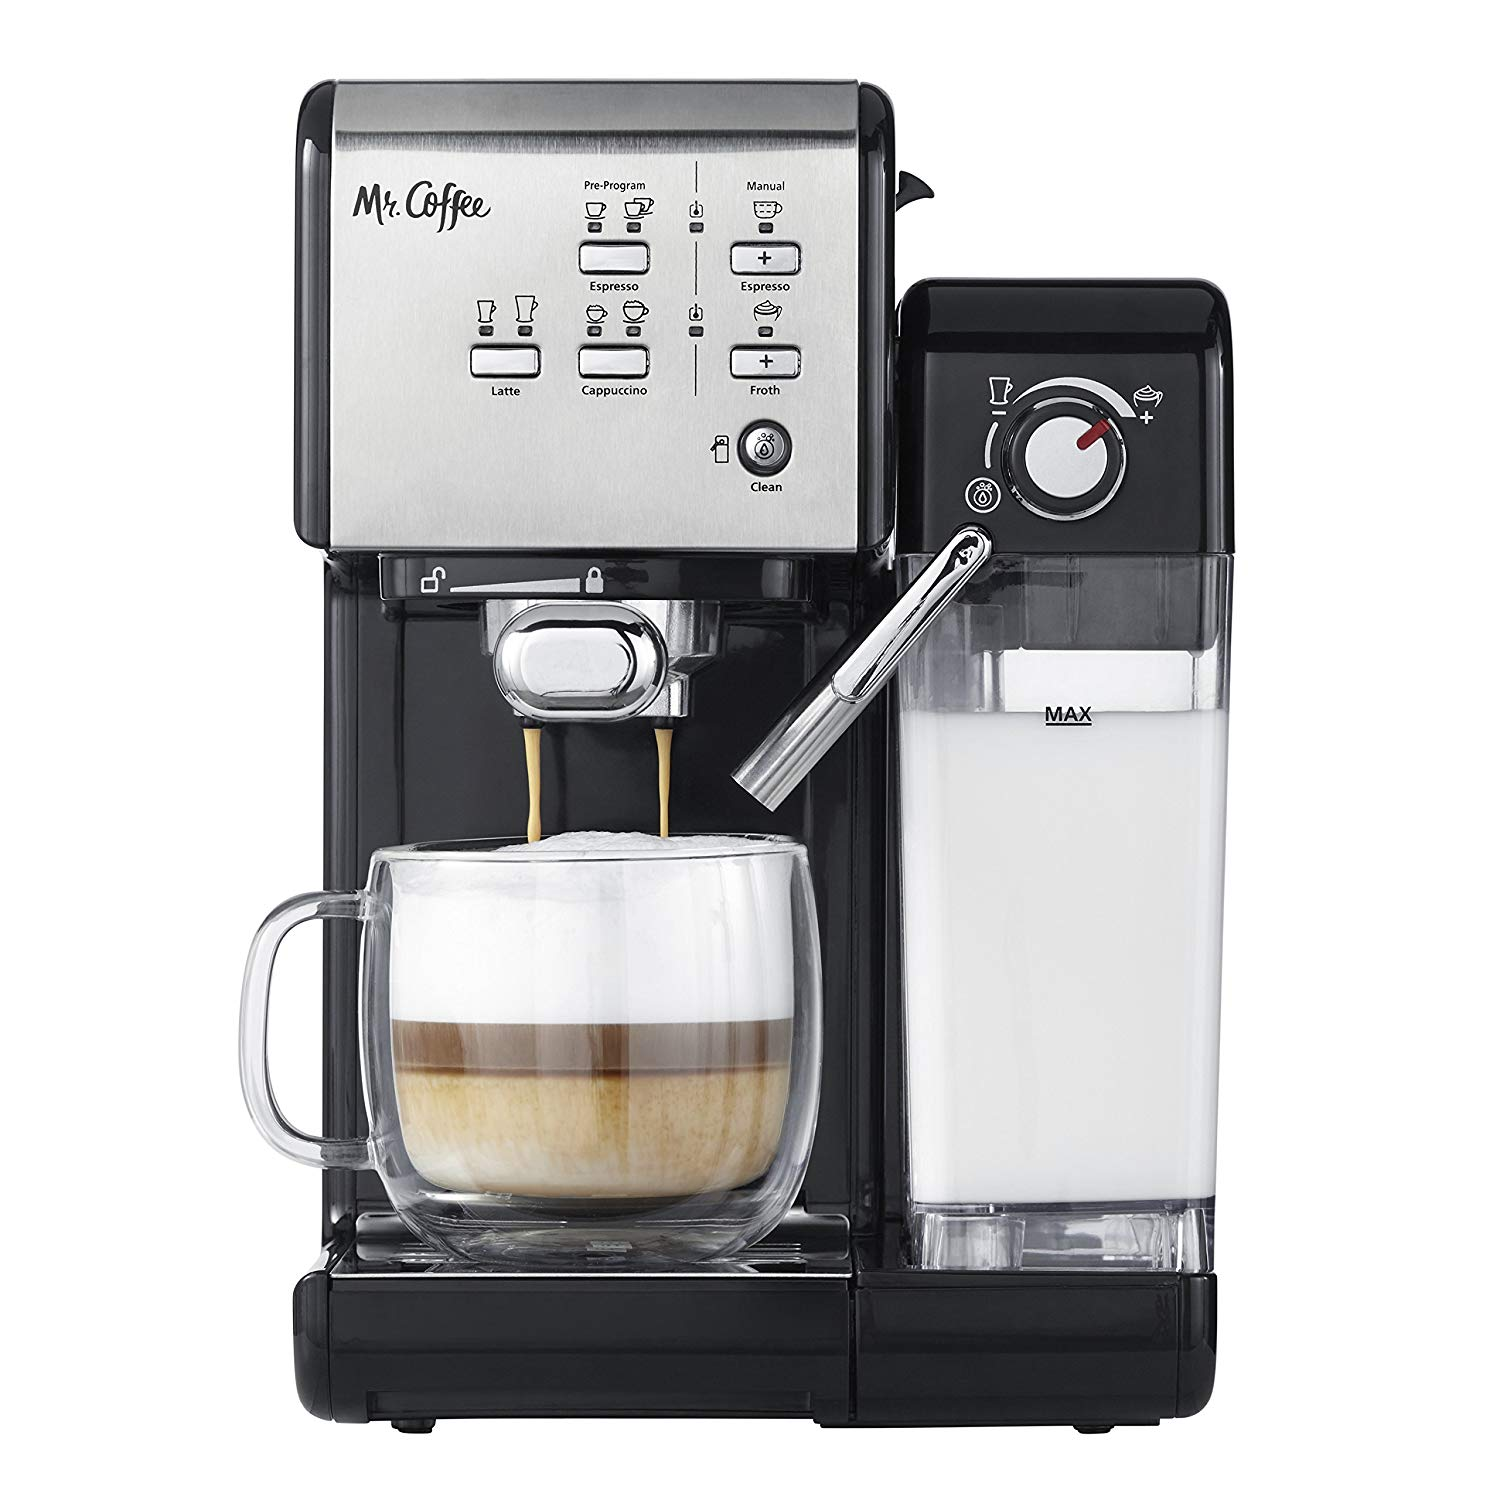 Mr. Coffee One-Touch Espresso Maker and Cappuccino Machine